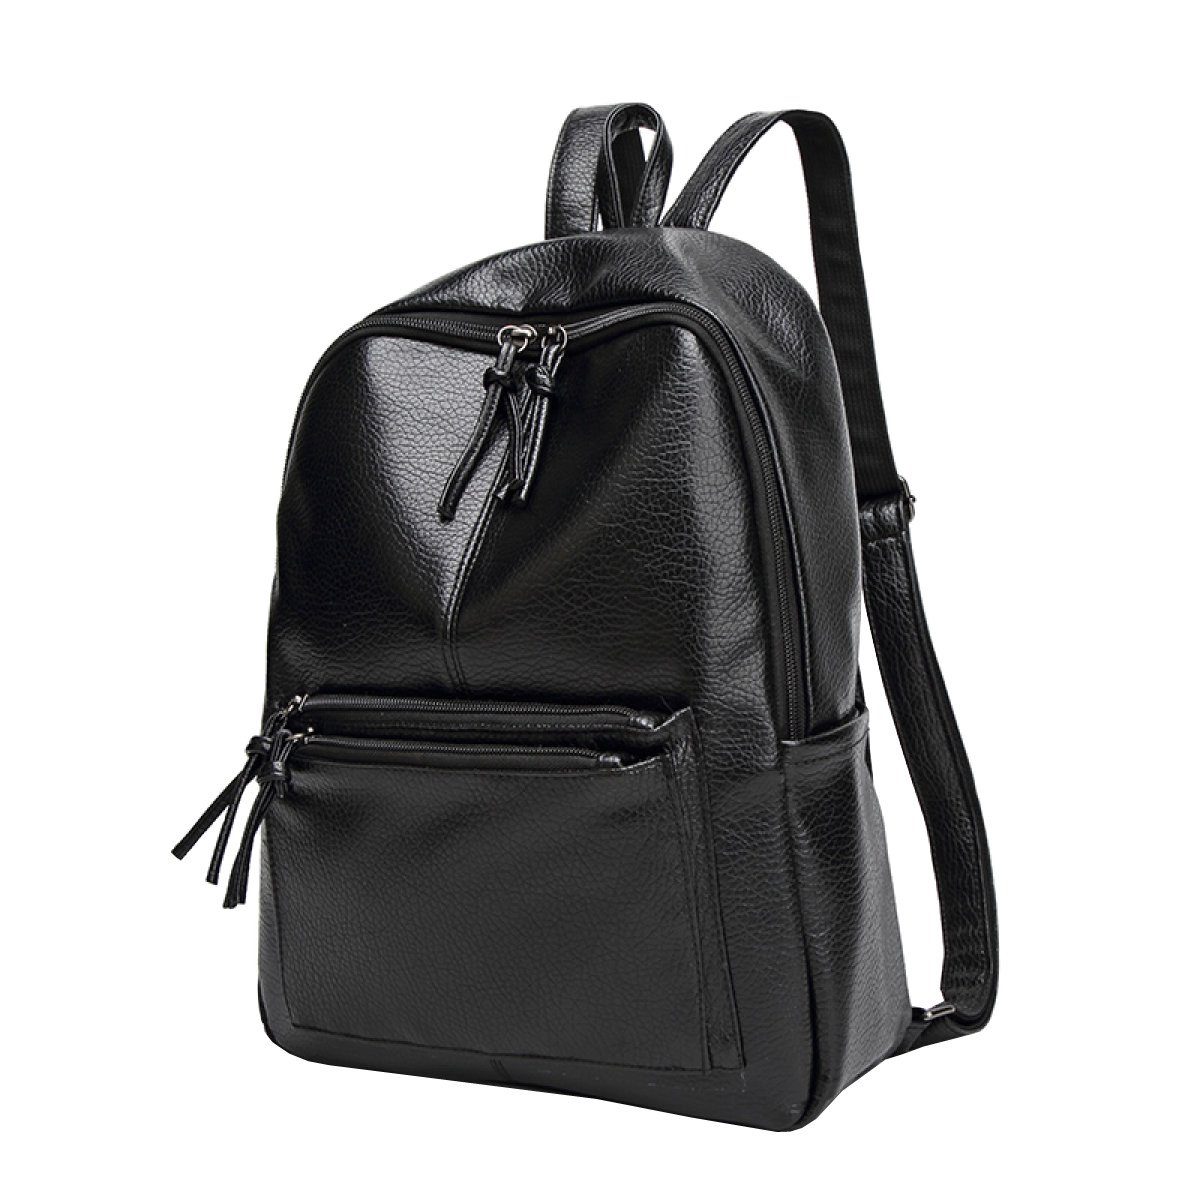 Black OneSize Ms. Casual Backpack Fashion Backpack PU Leather Bag Travel Bag Shoulder Bag,BlackOneSize